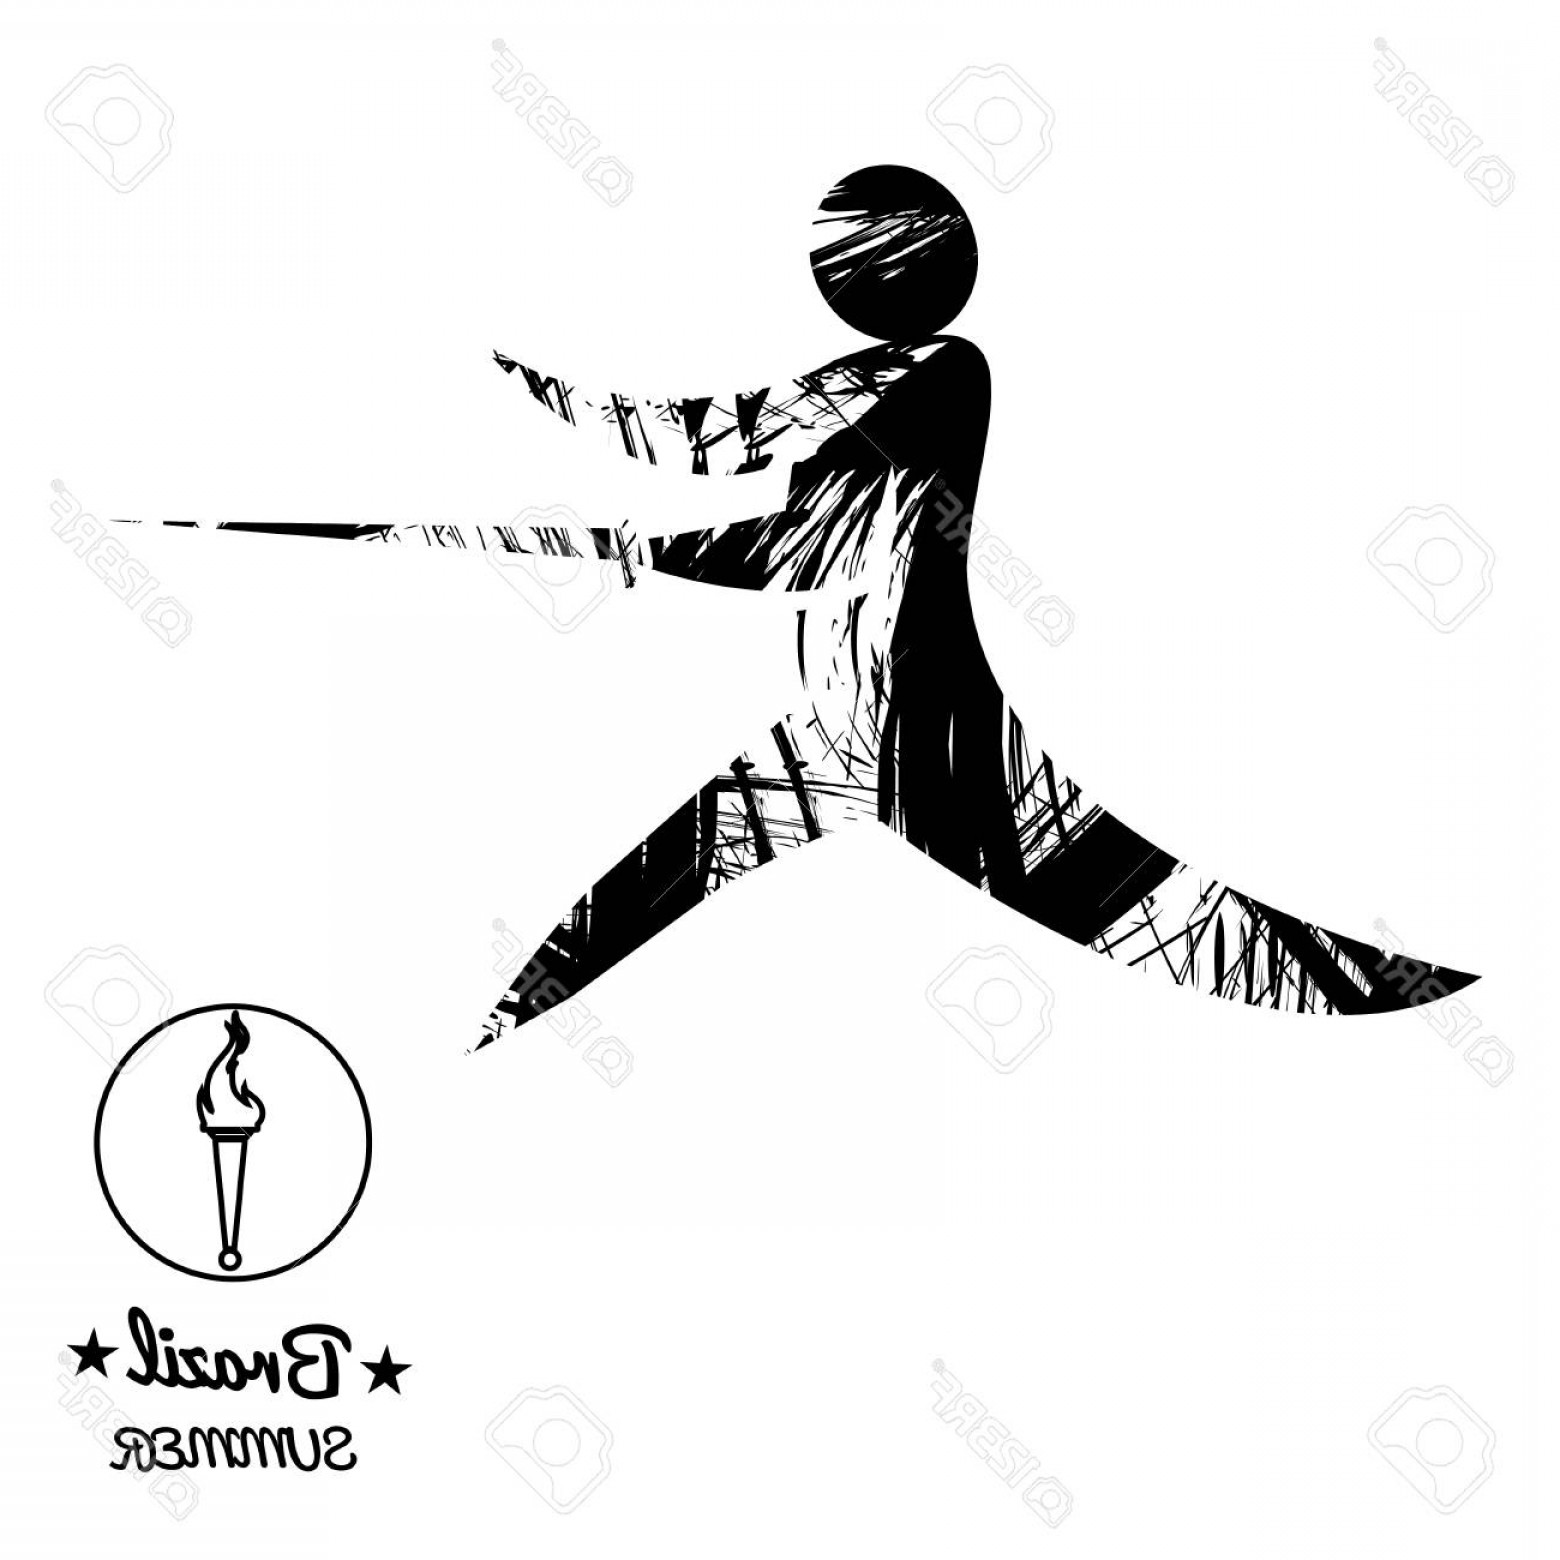 Abstract Football Vector Outline: Photostock Vector Brazil Summer Sport Card With An Abstract Fencer In Black Outlines Digital Vector Image